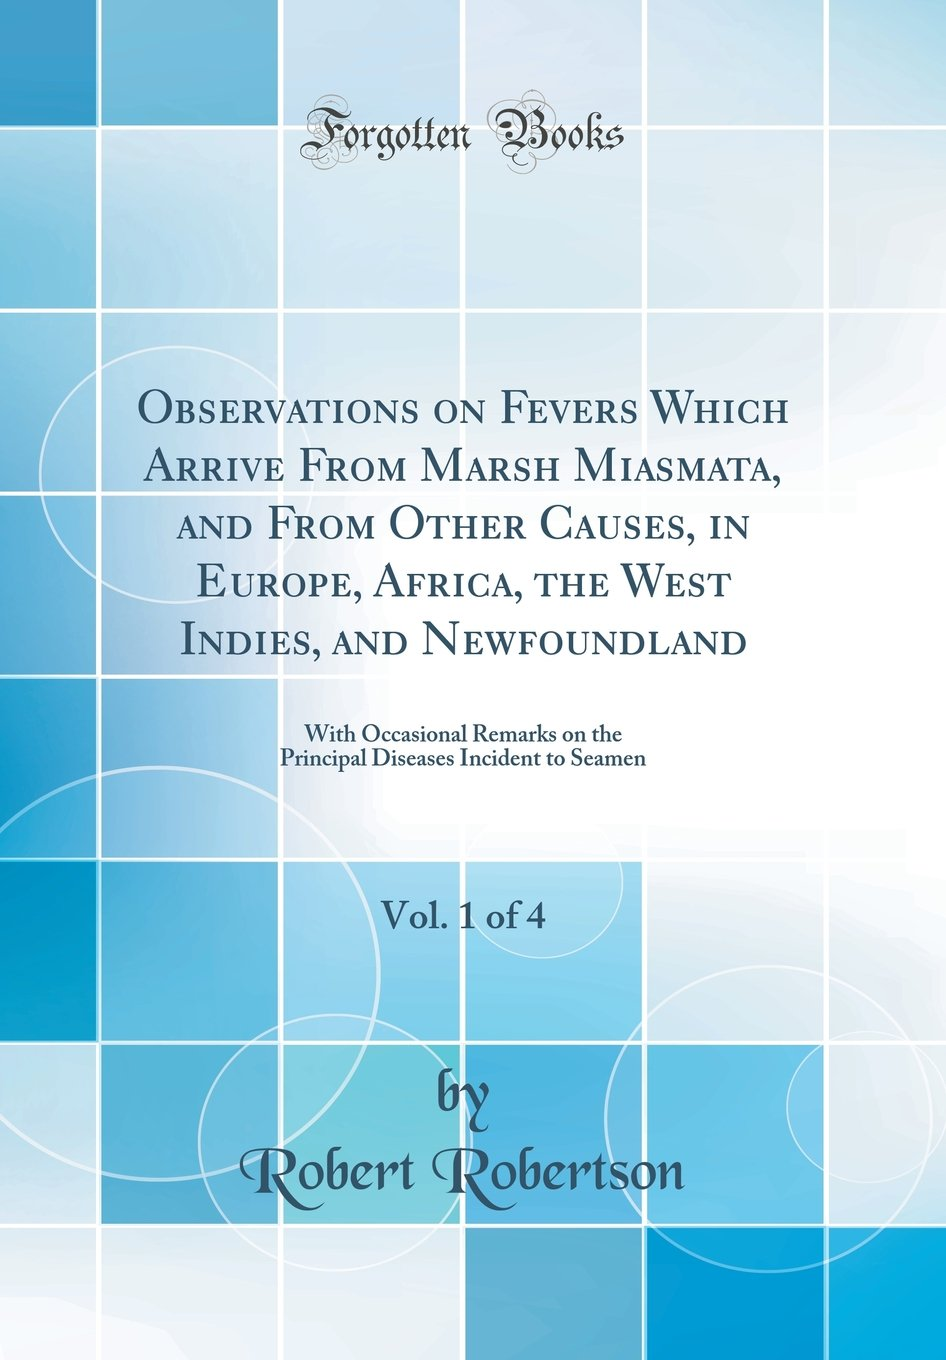 Read Online Observations on Fevers Which Arrive From Marsh Miasmata, and From Other Causes, in Europe, Africa, the West Indies, and Newfoundland, Vol. 1 of 4: ... Diseases Incident to Seamen (Classic Reprint) ebook